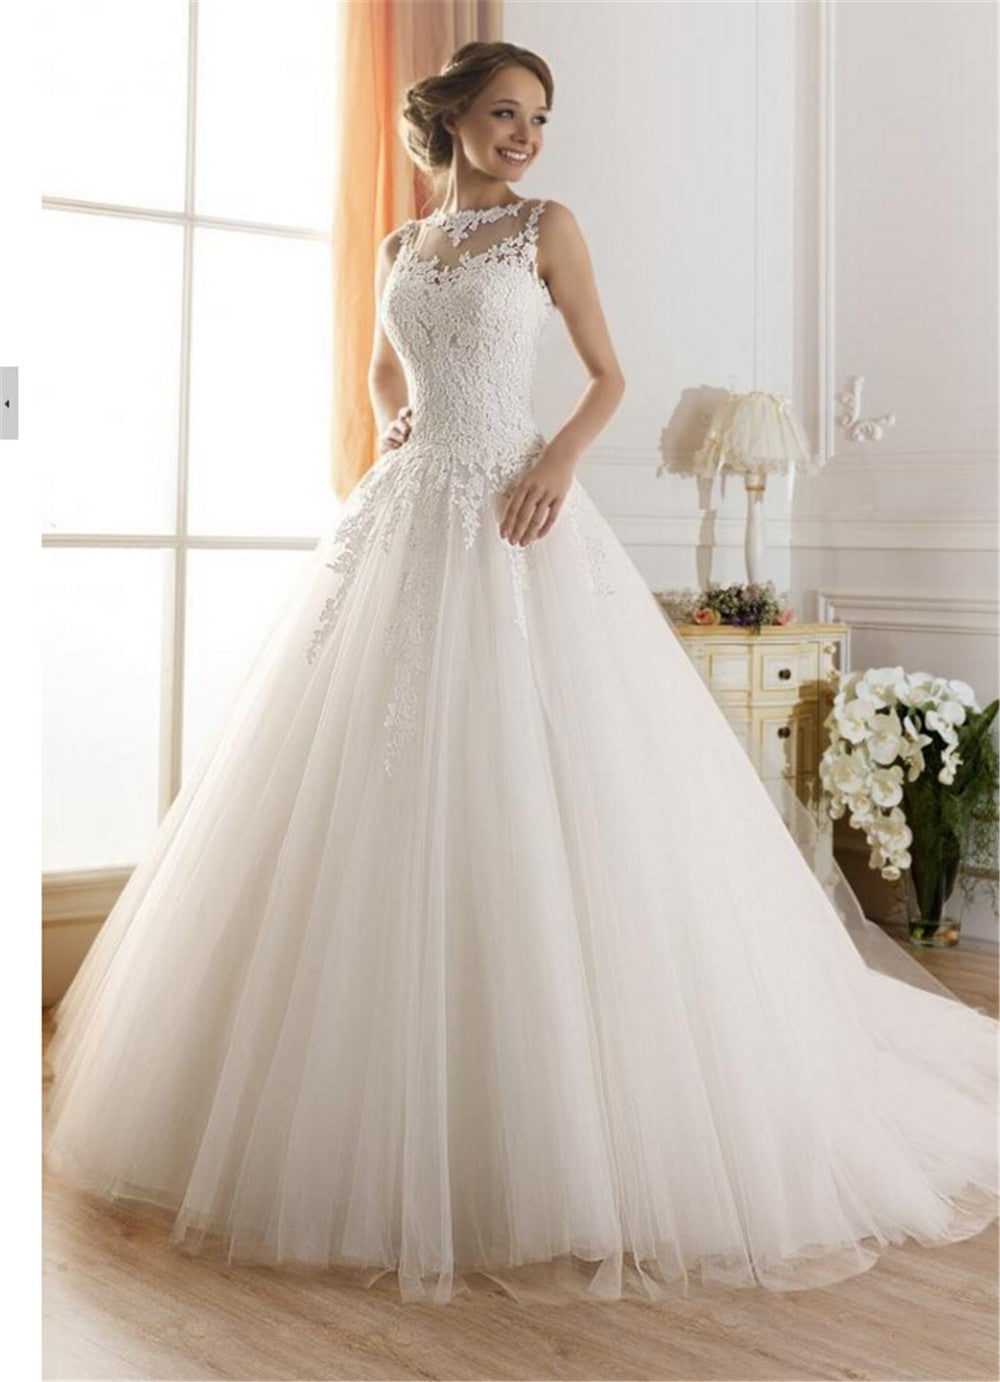 c33b688cb27 Angelina Tulle Ballgown Wedding Dress - Mondainé Bridal Studio ...